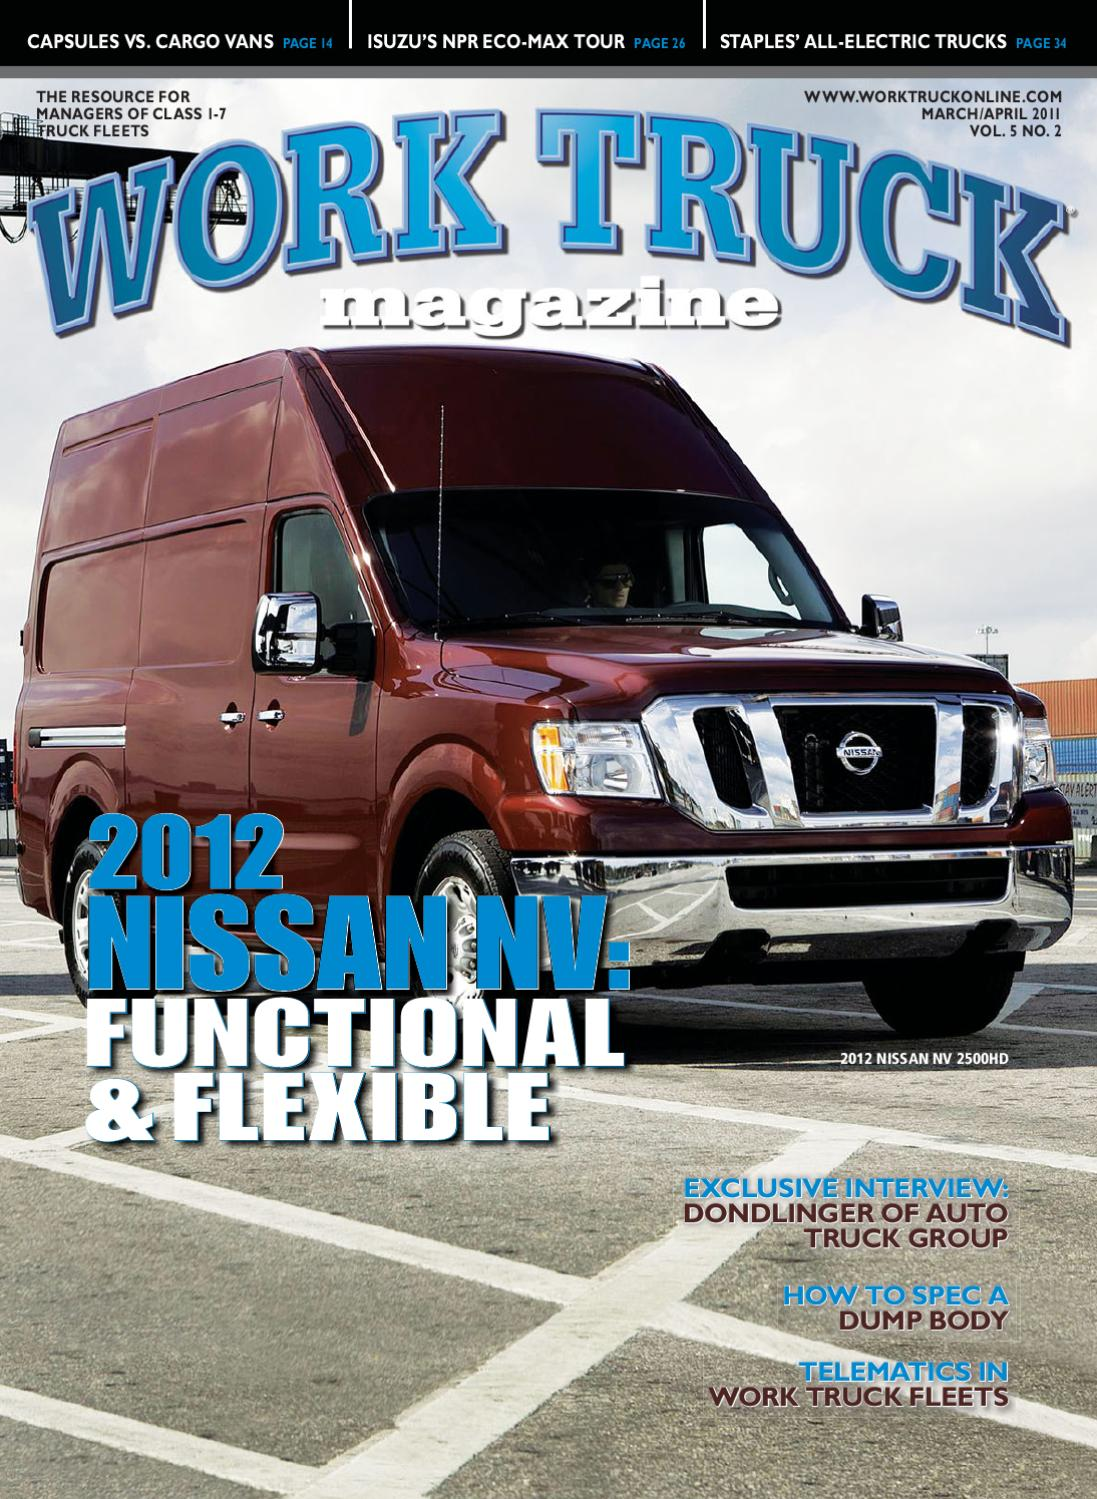 Letter to the editor of work truck more sophisticated fuel - Letter To The Editor Of Work Truck More Sophisticated Fuel 44